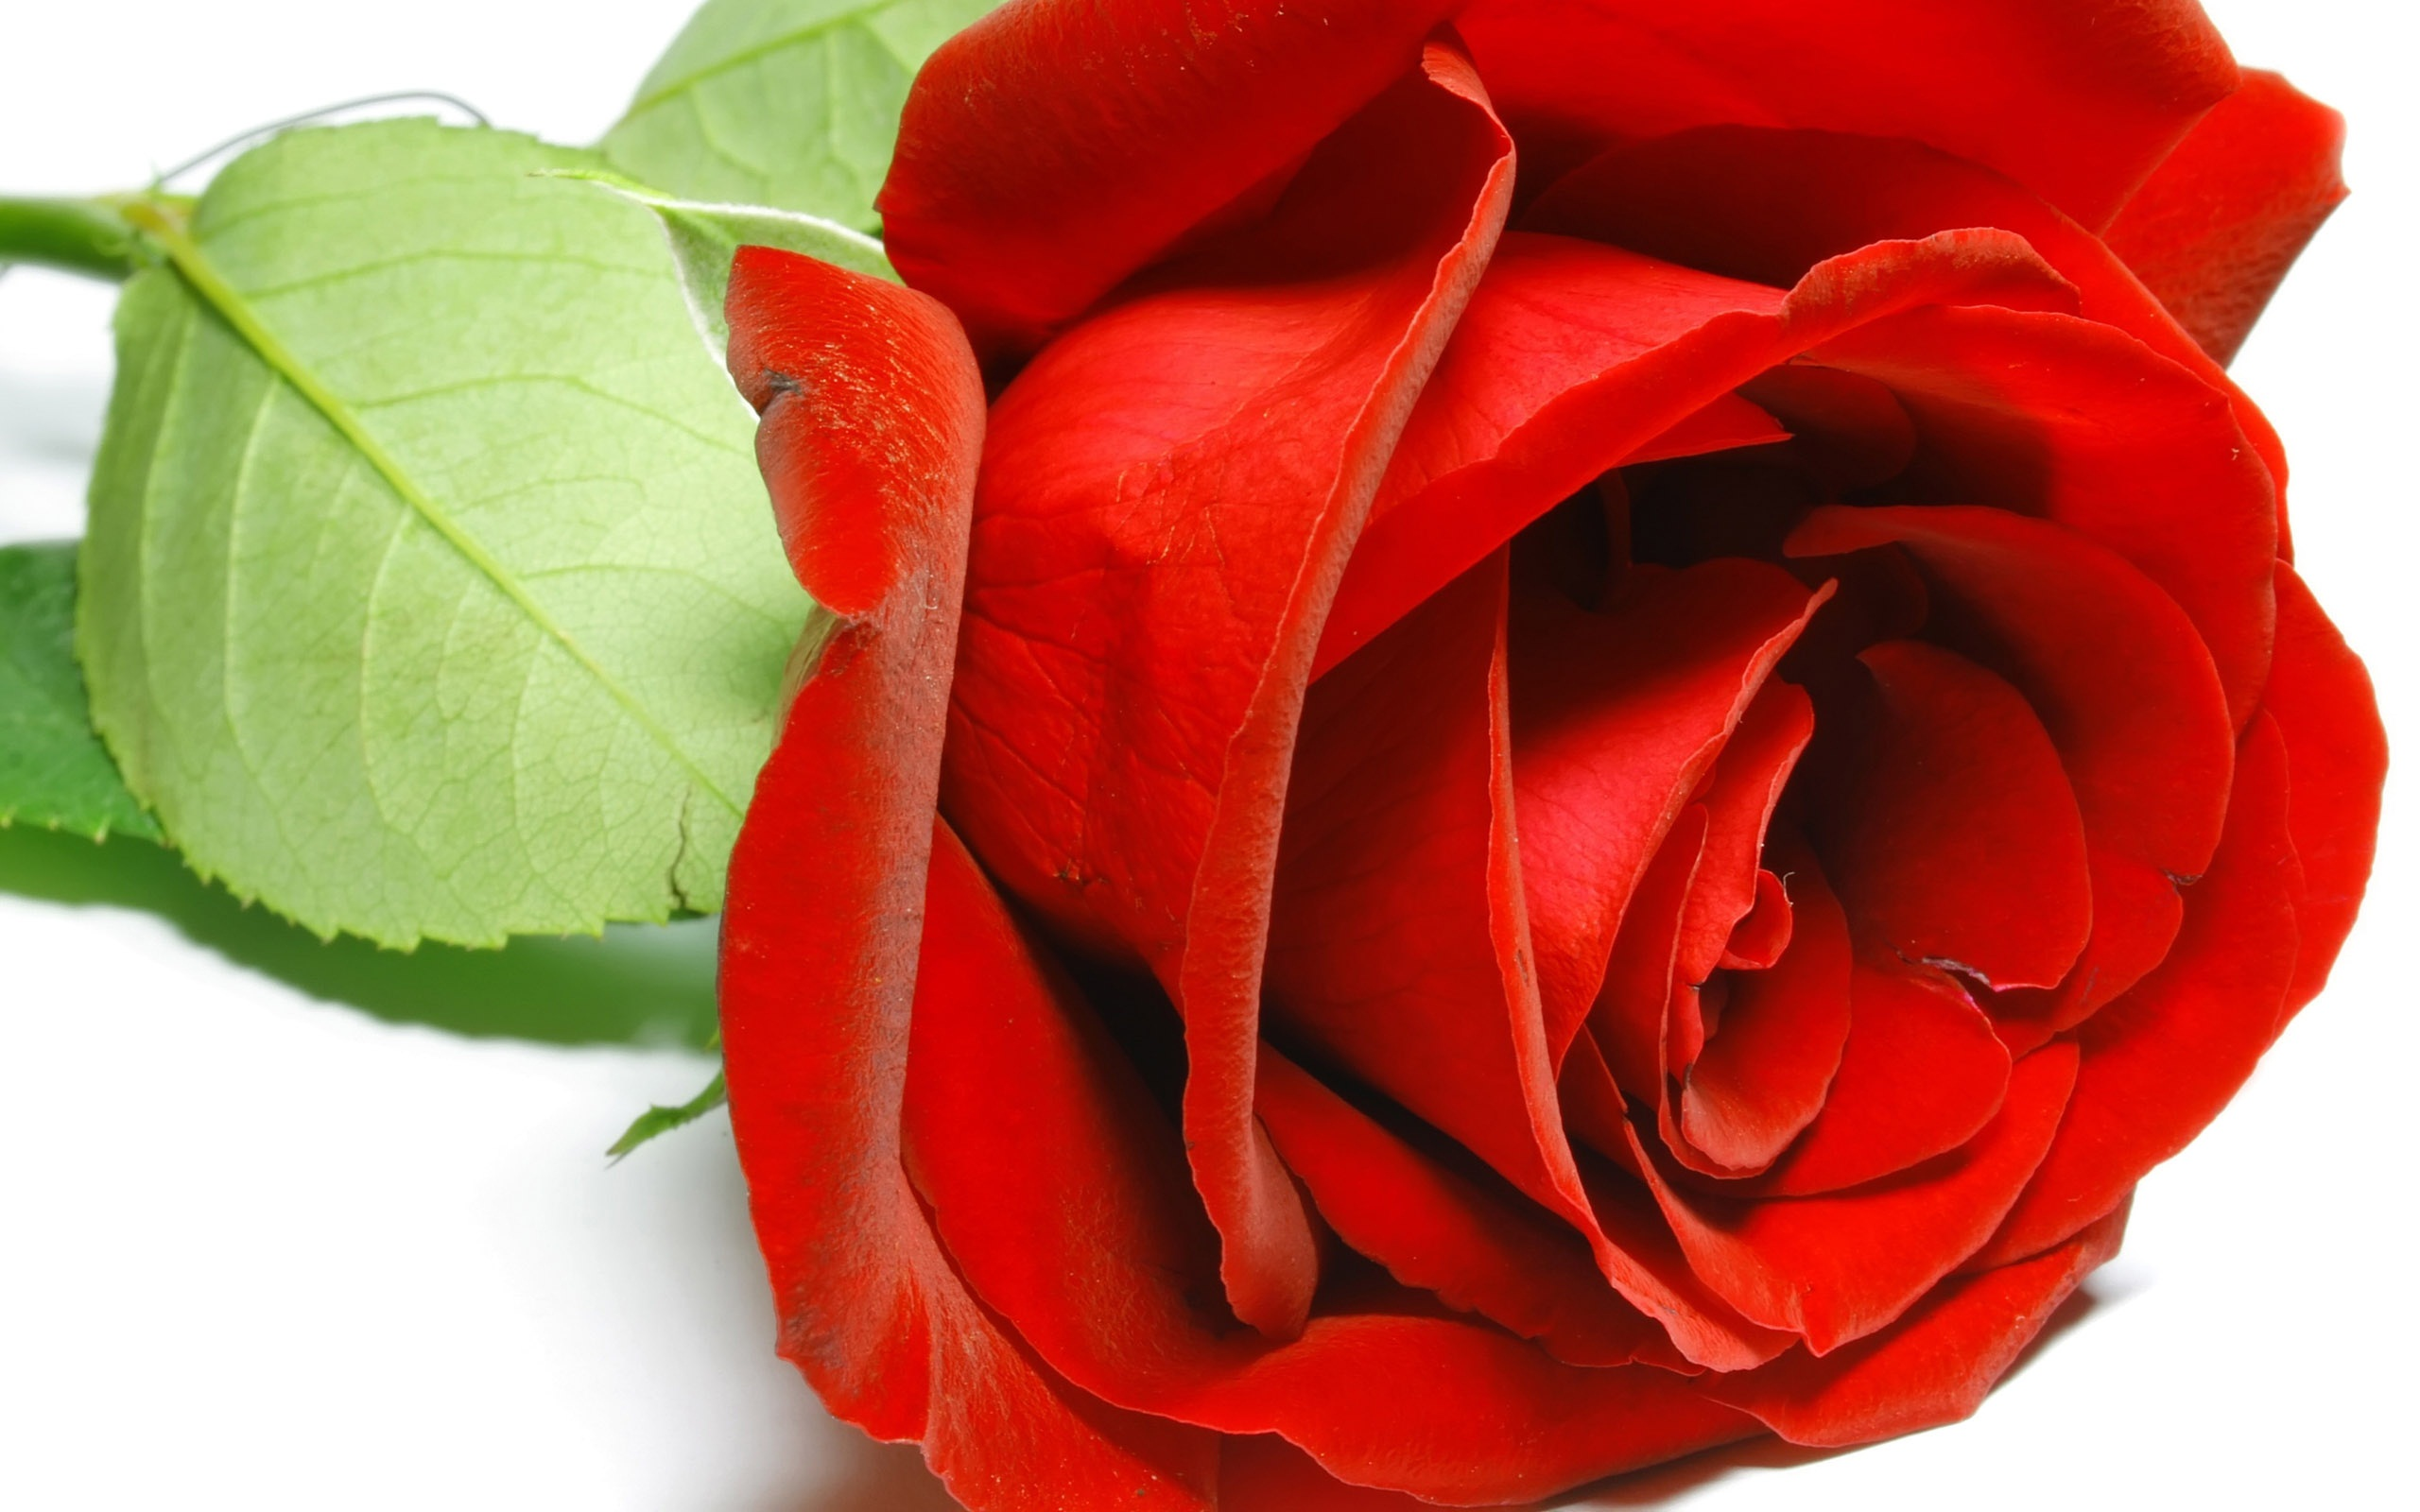 Red rose wallpapers pictures images - Red rose flower hd images ...